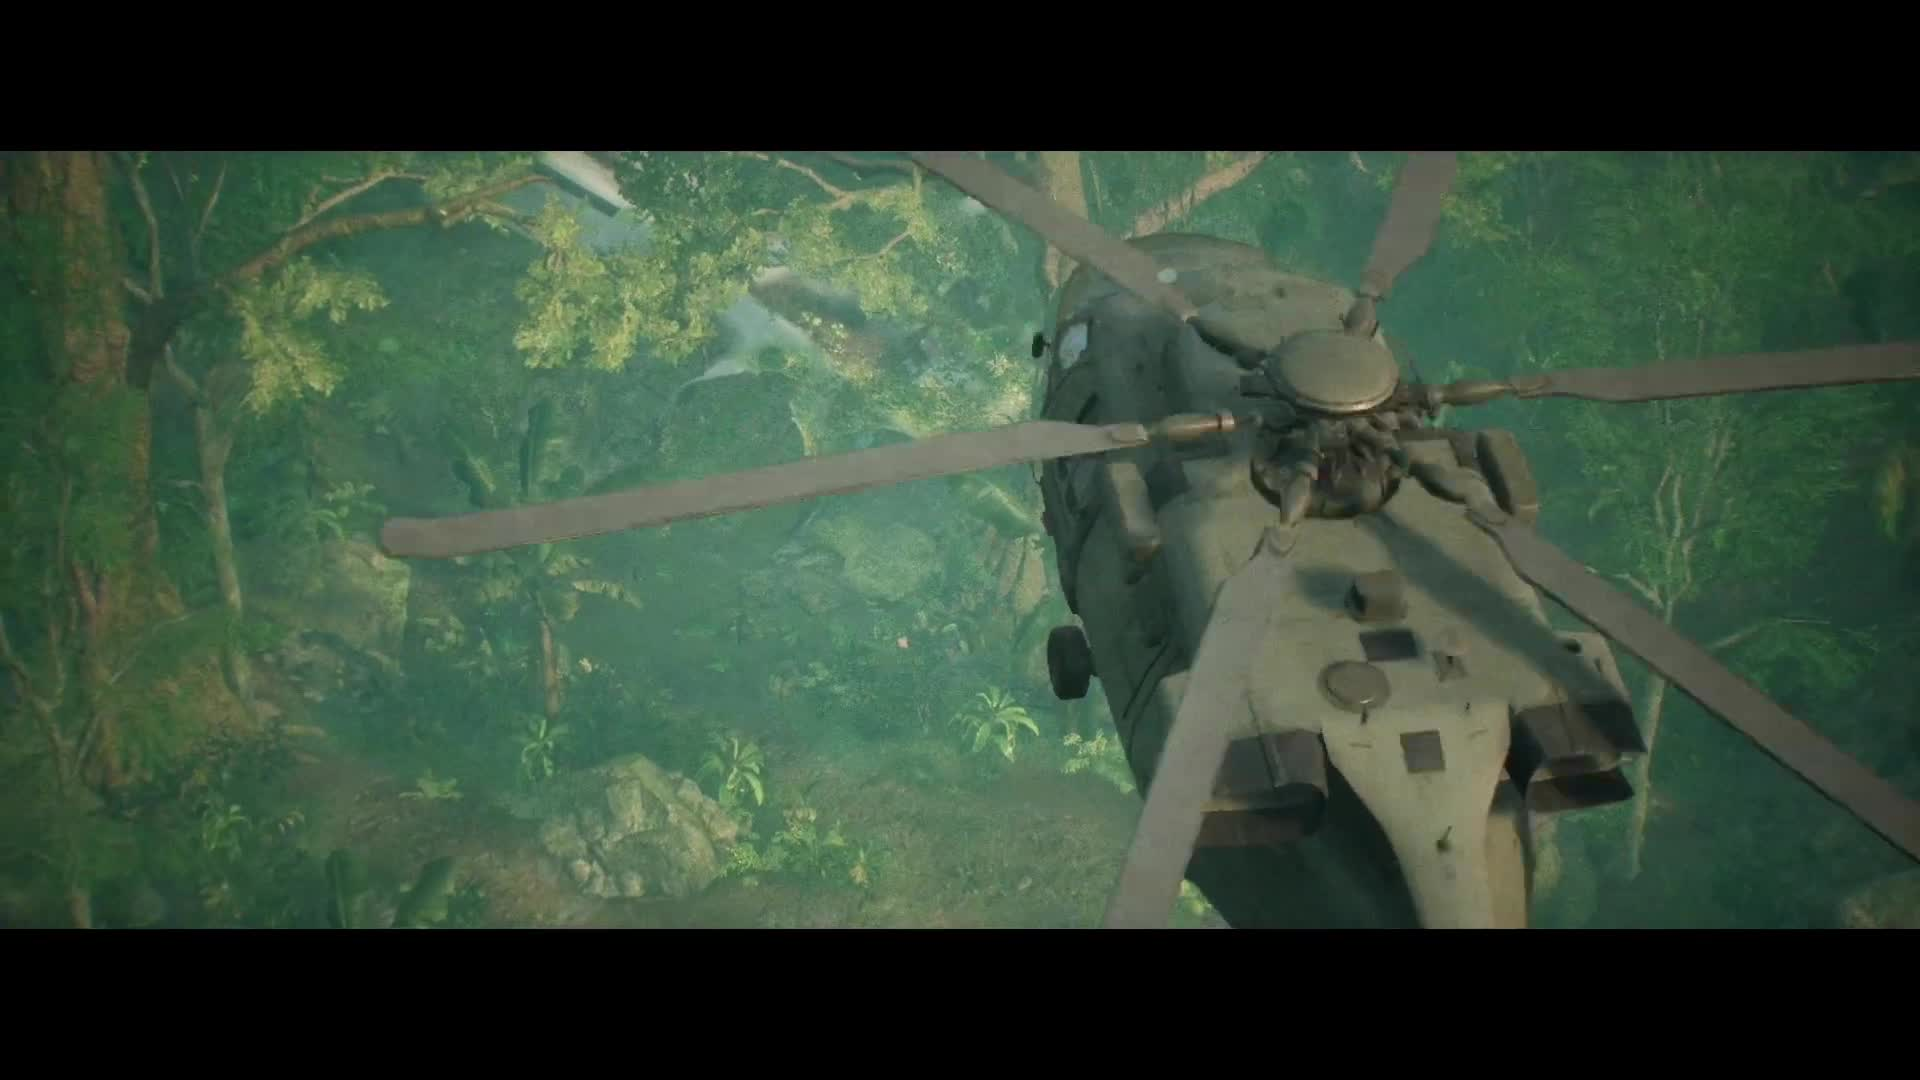 Predator: Hunting Grounds - Gameplay Reveal [HD] screen capture